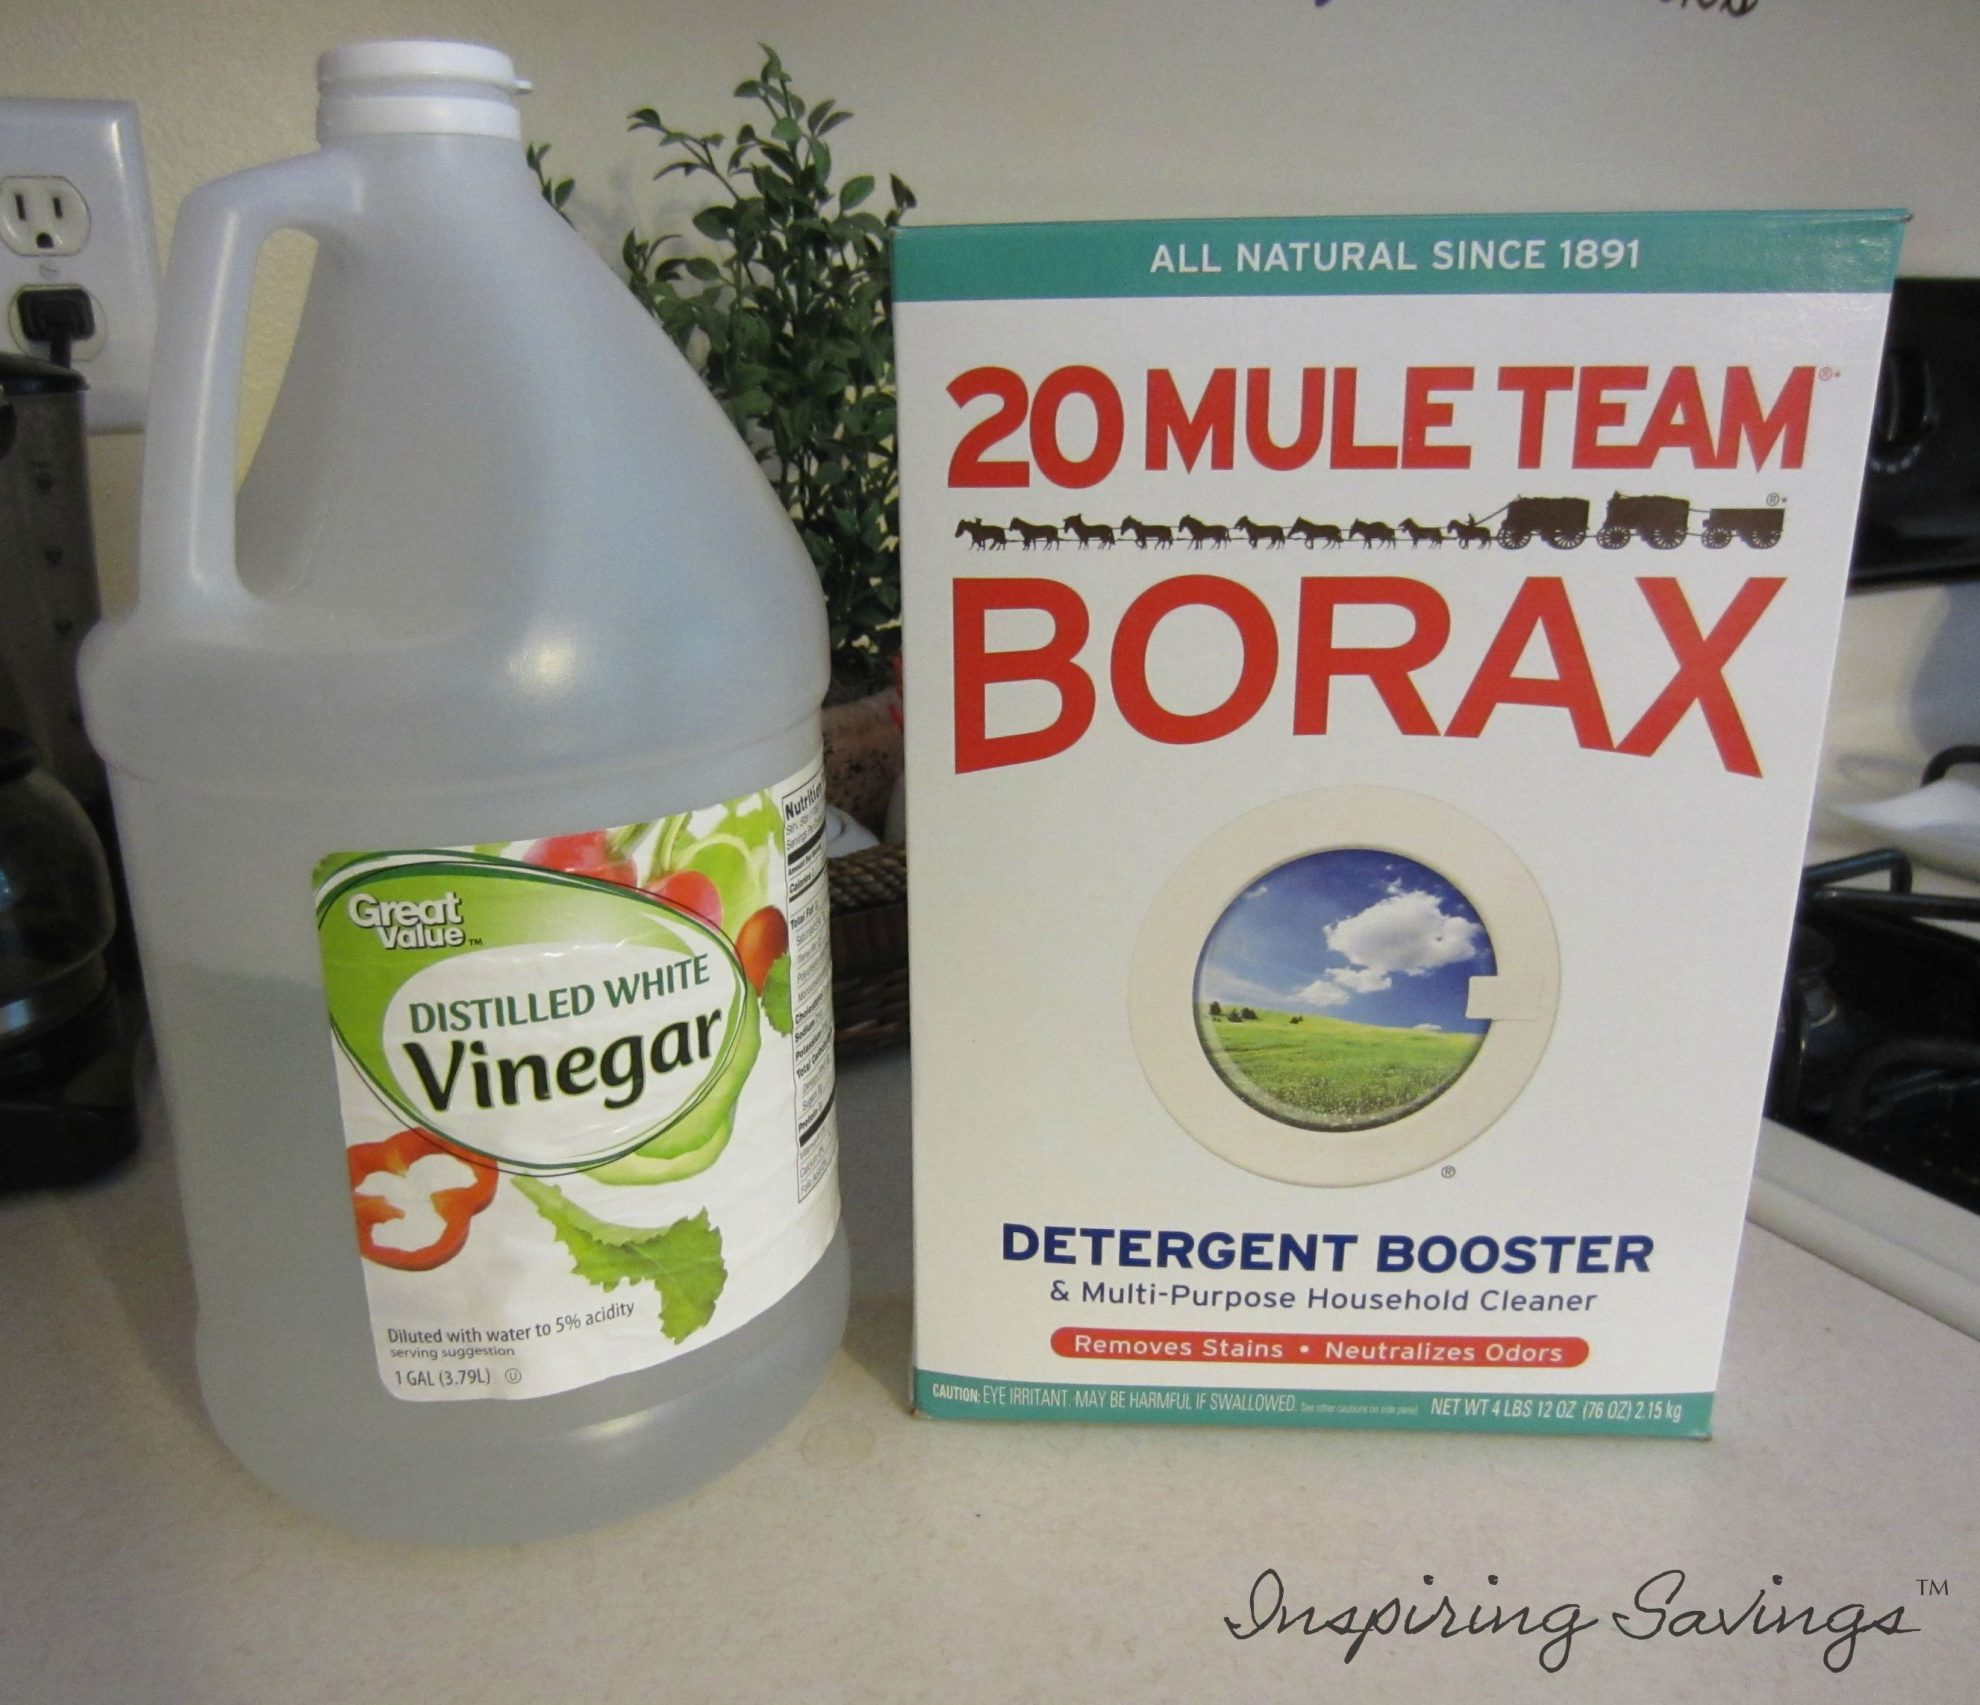 Box of 20 Mule Team Borax and gallon of vinegar - ingredients needed for All Natural Kitchen Degreaser